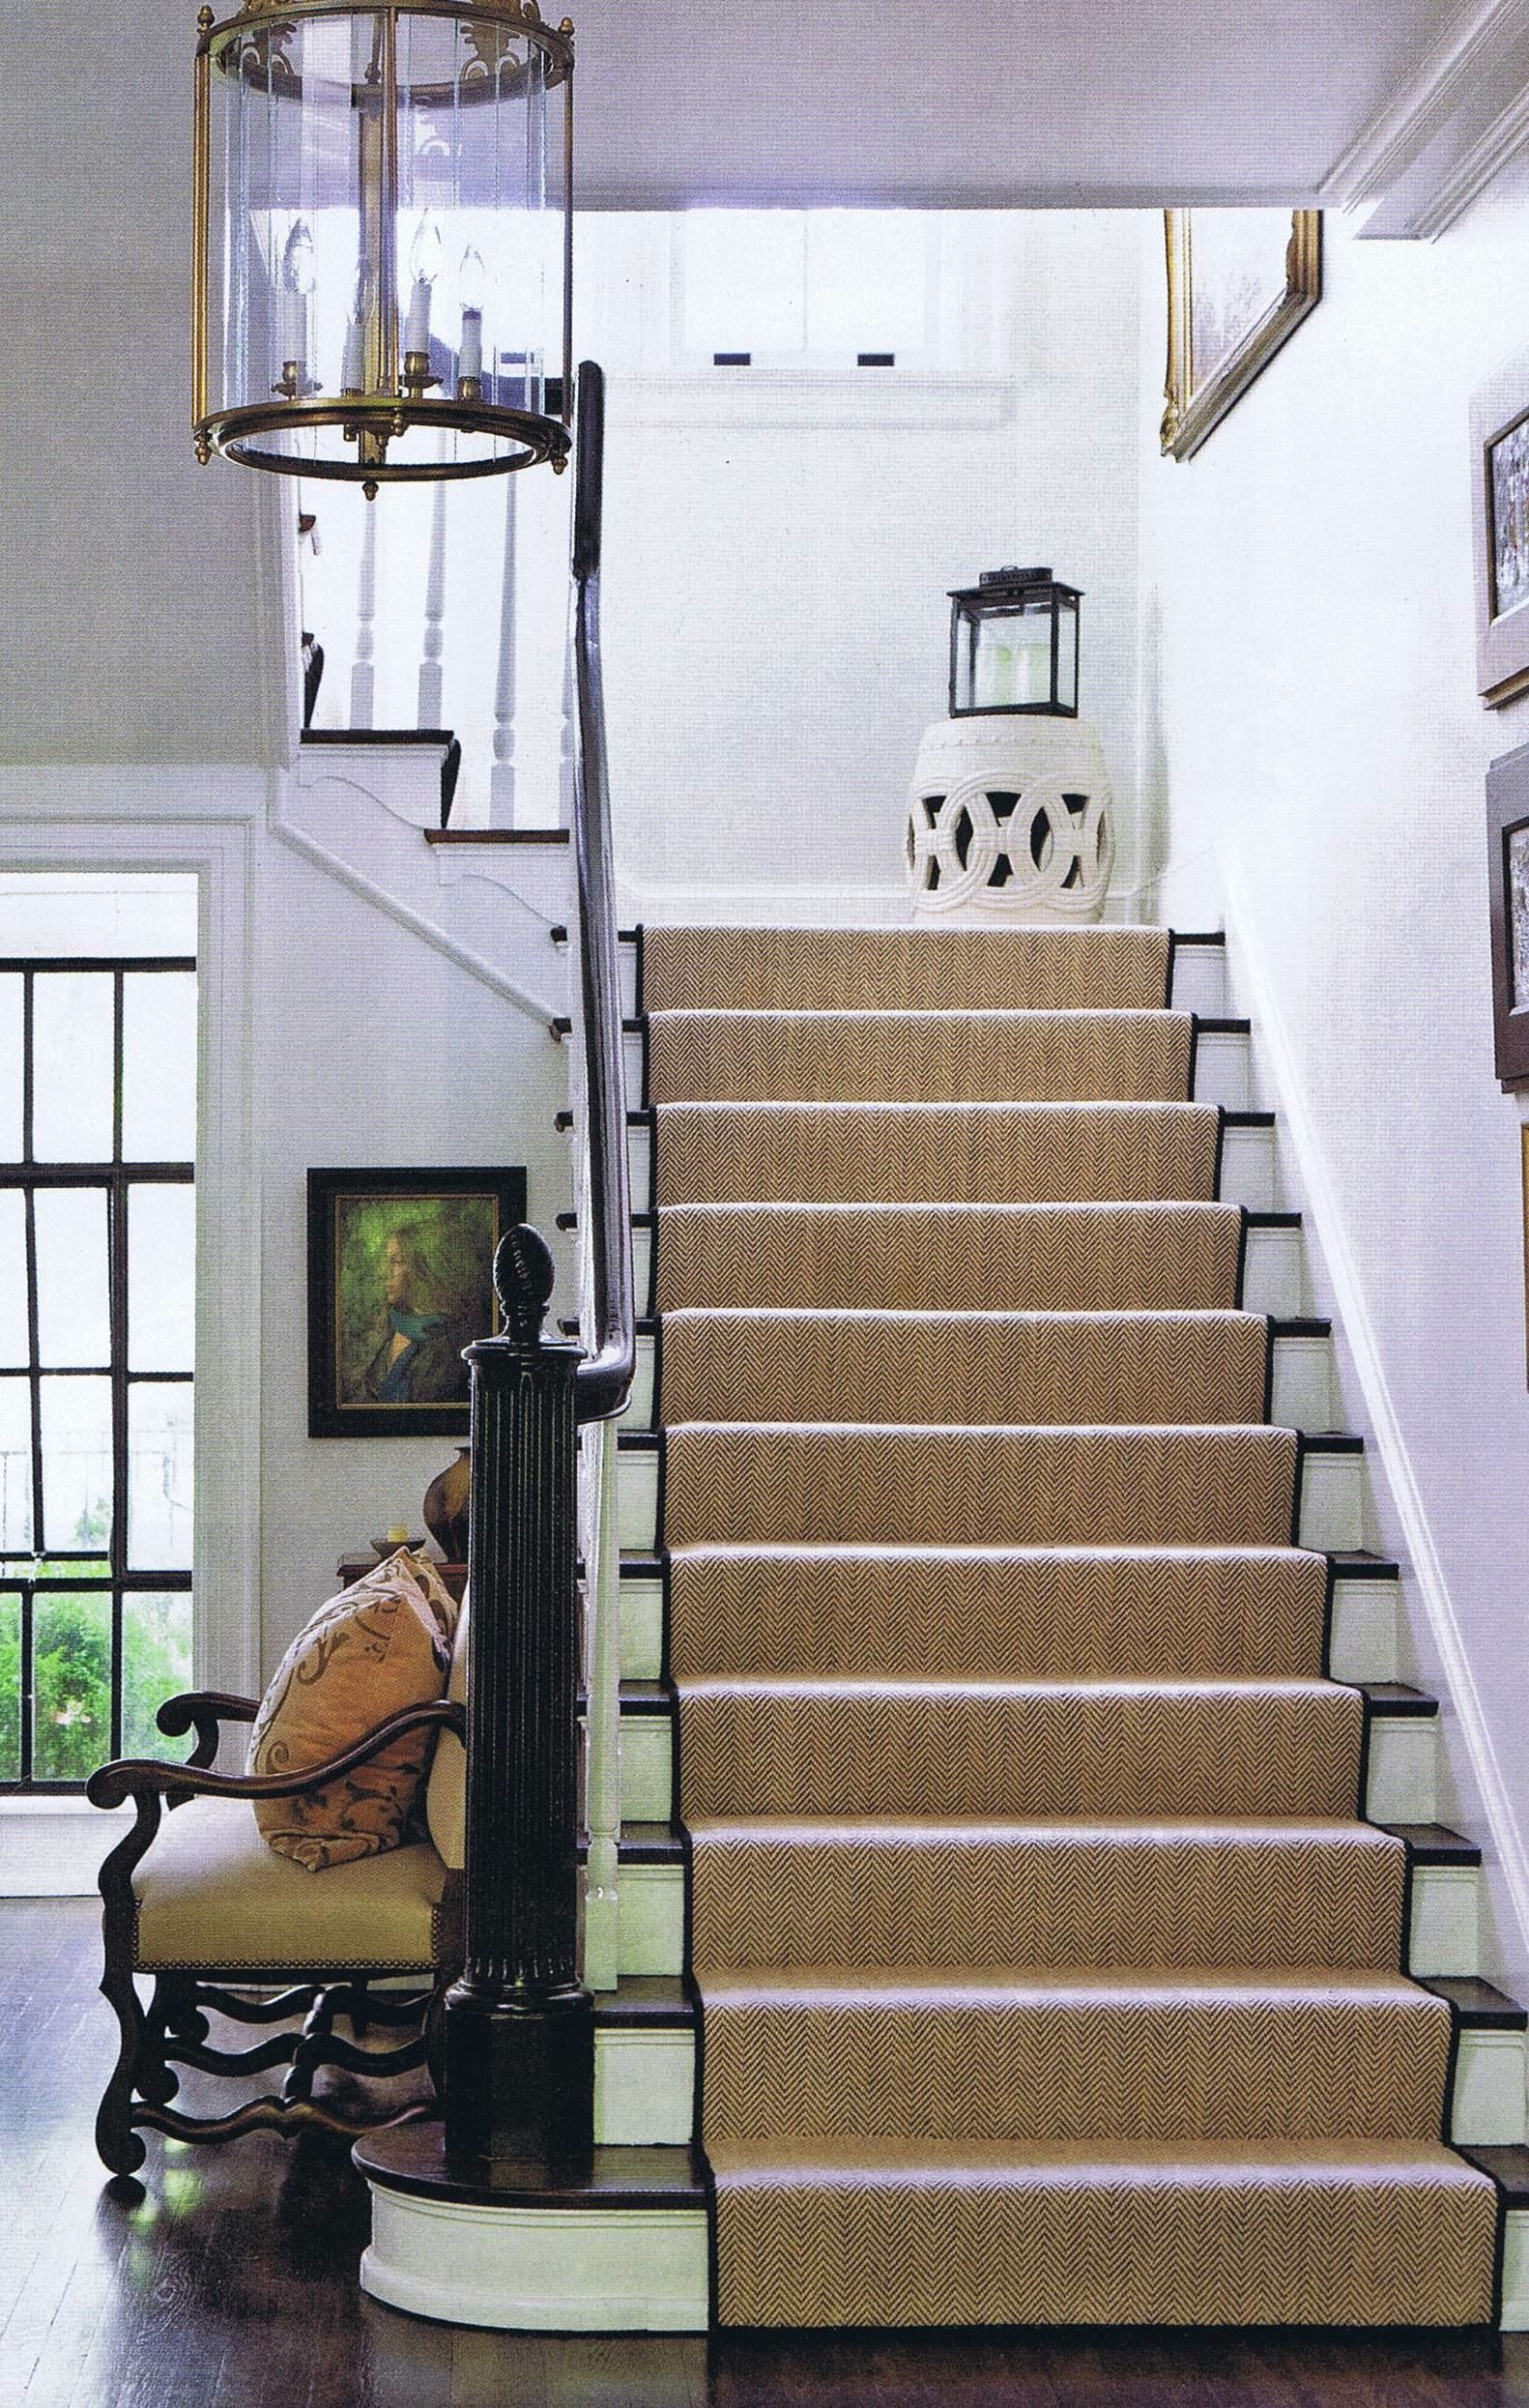 Escalera Hogar Stair Runner And Stool Top Of Stairs Escaleras Y